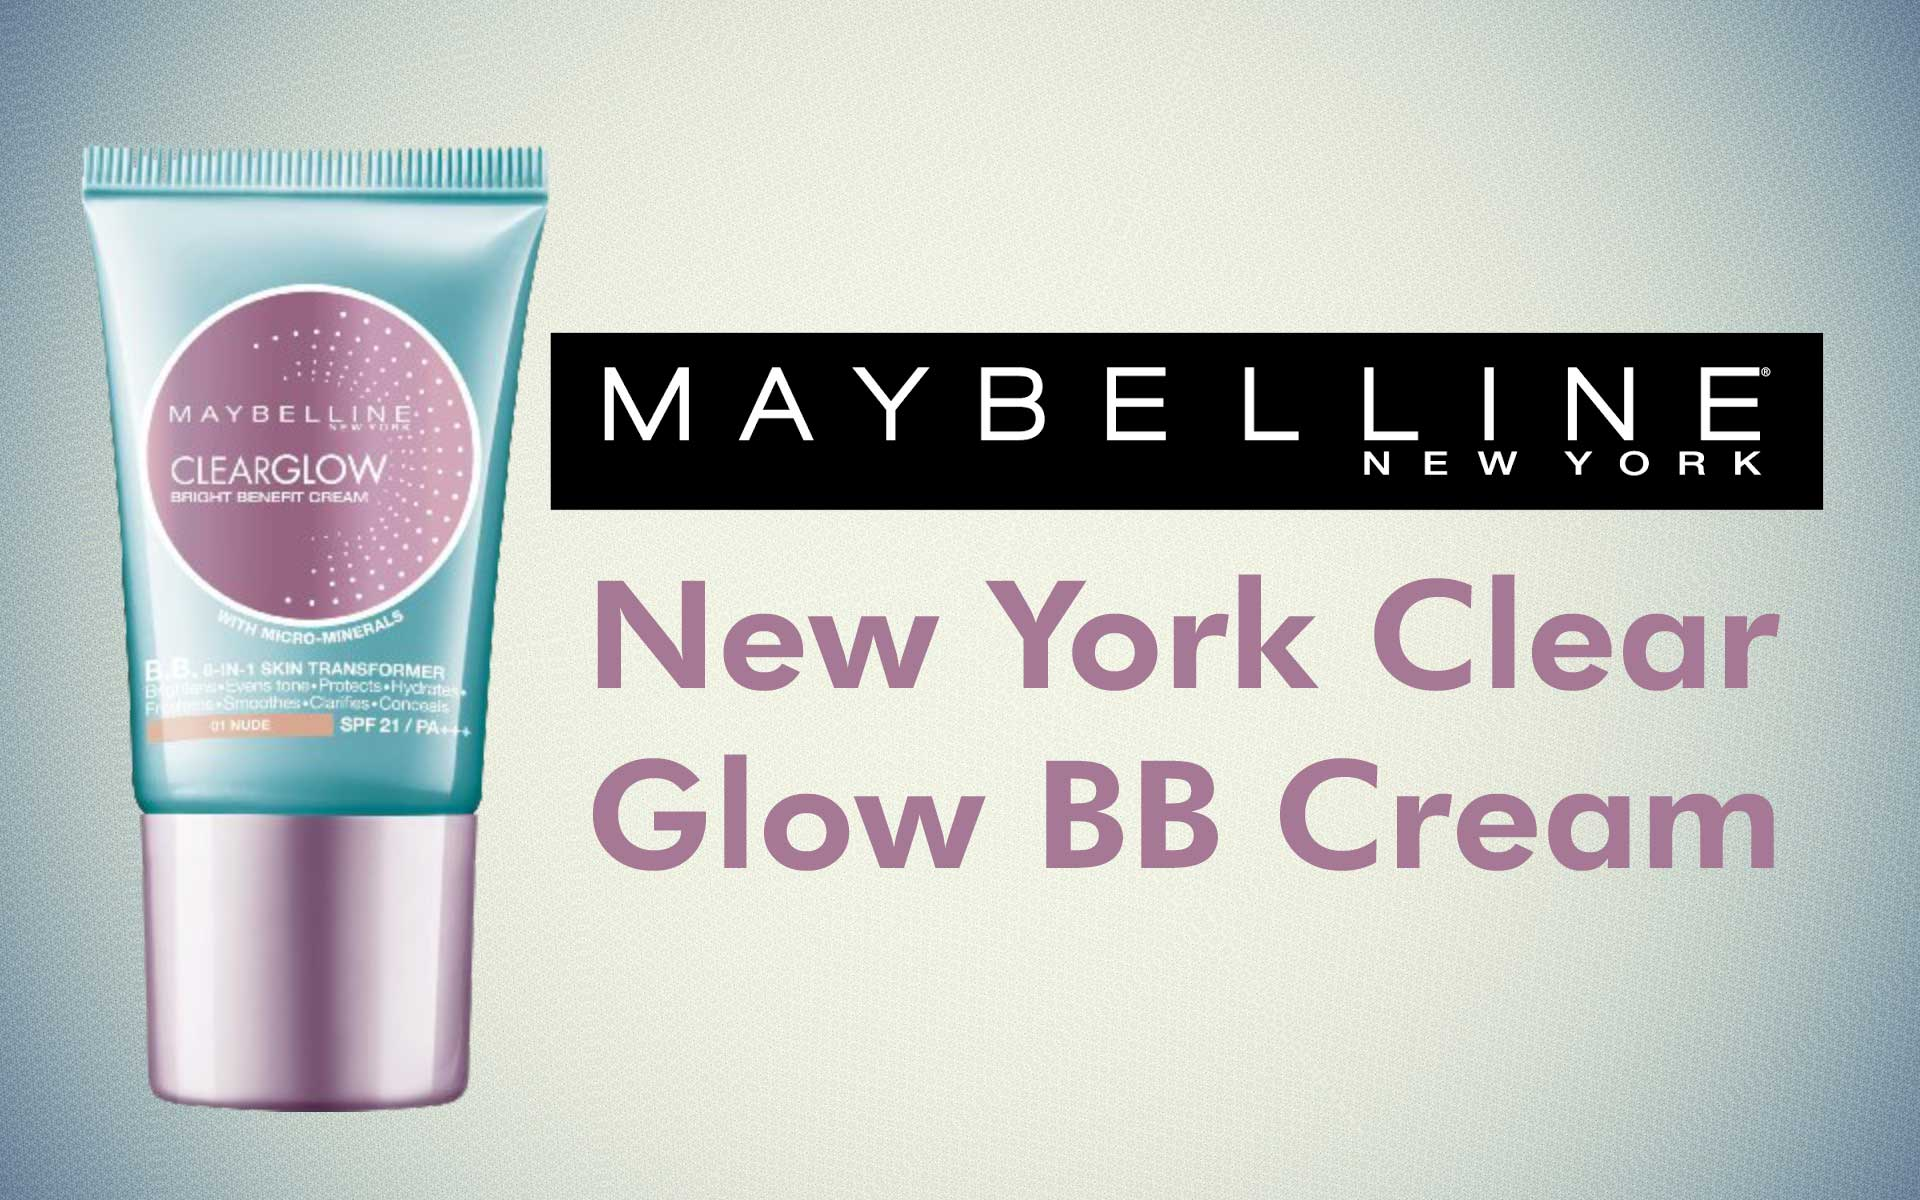 buy maybelline new york clear glow bb cream concealer lowest price